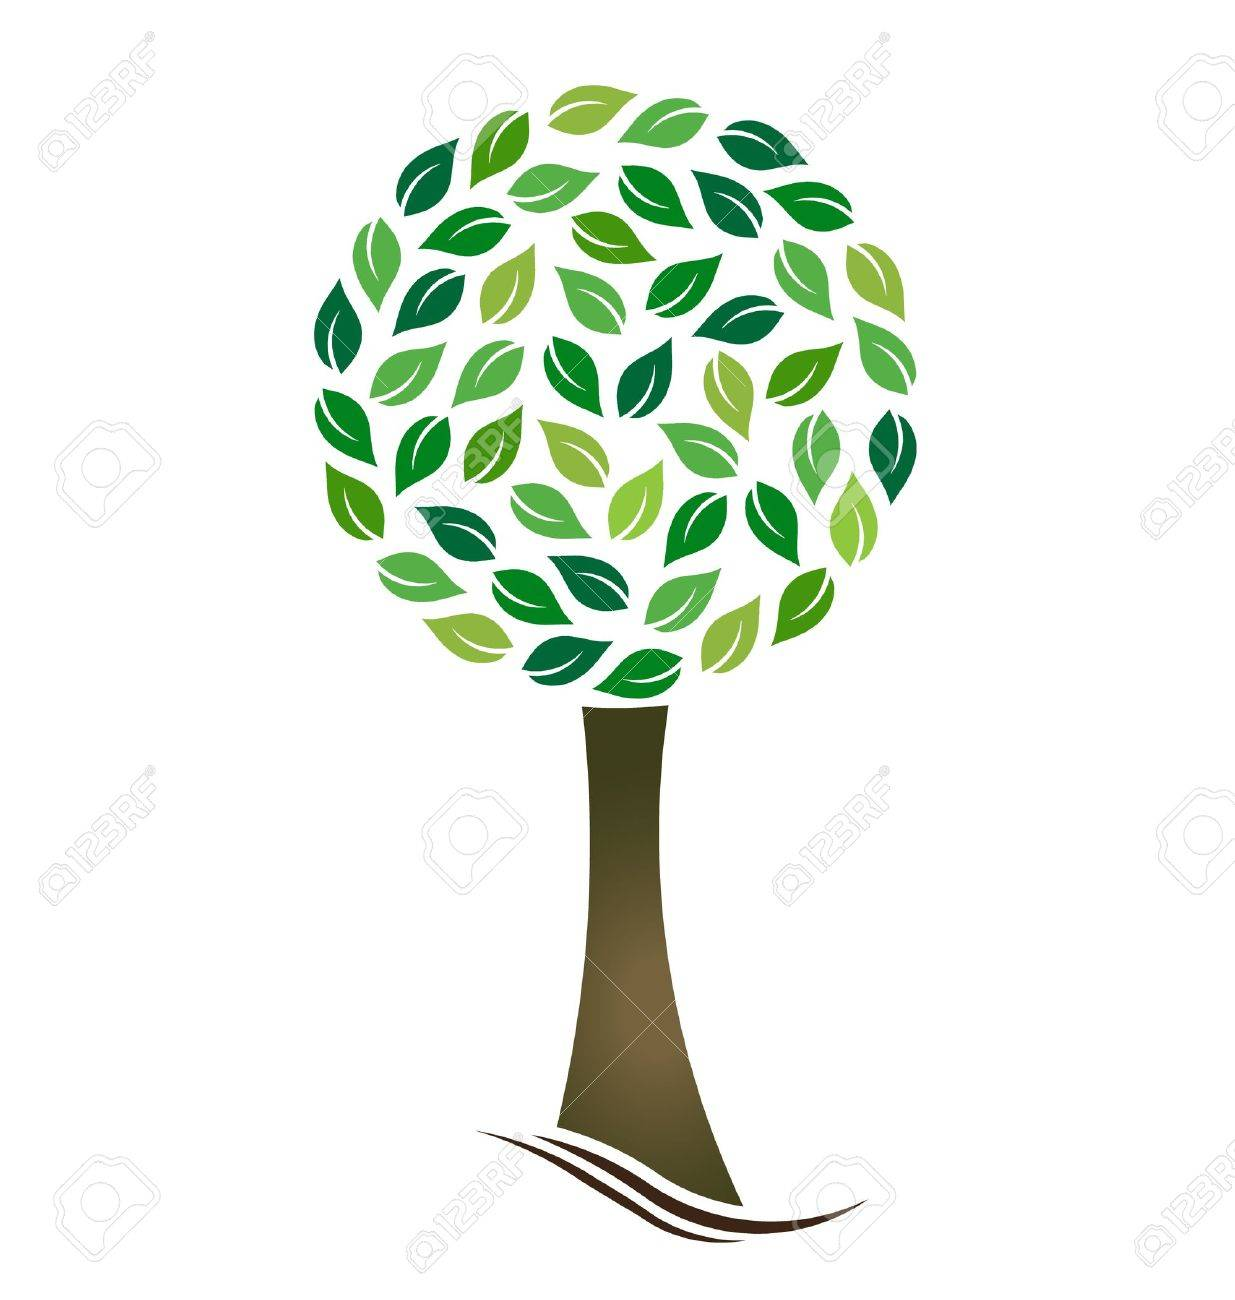 Tree with circled leaves Stock Vector - 19027978